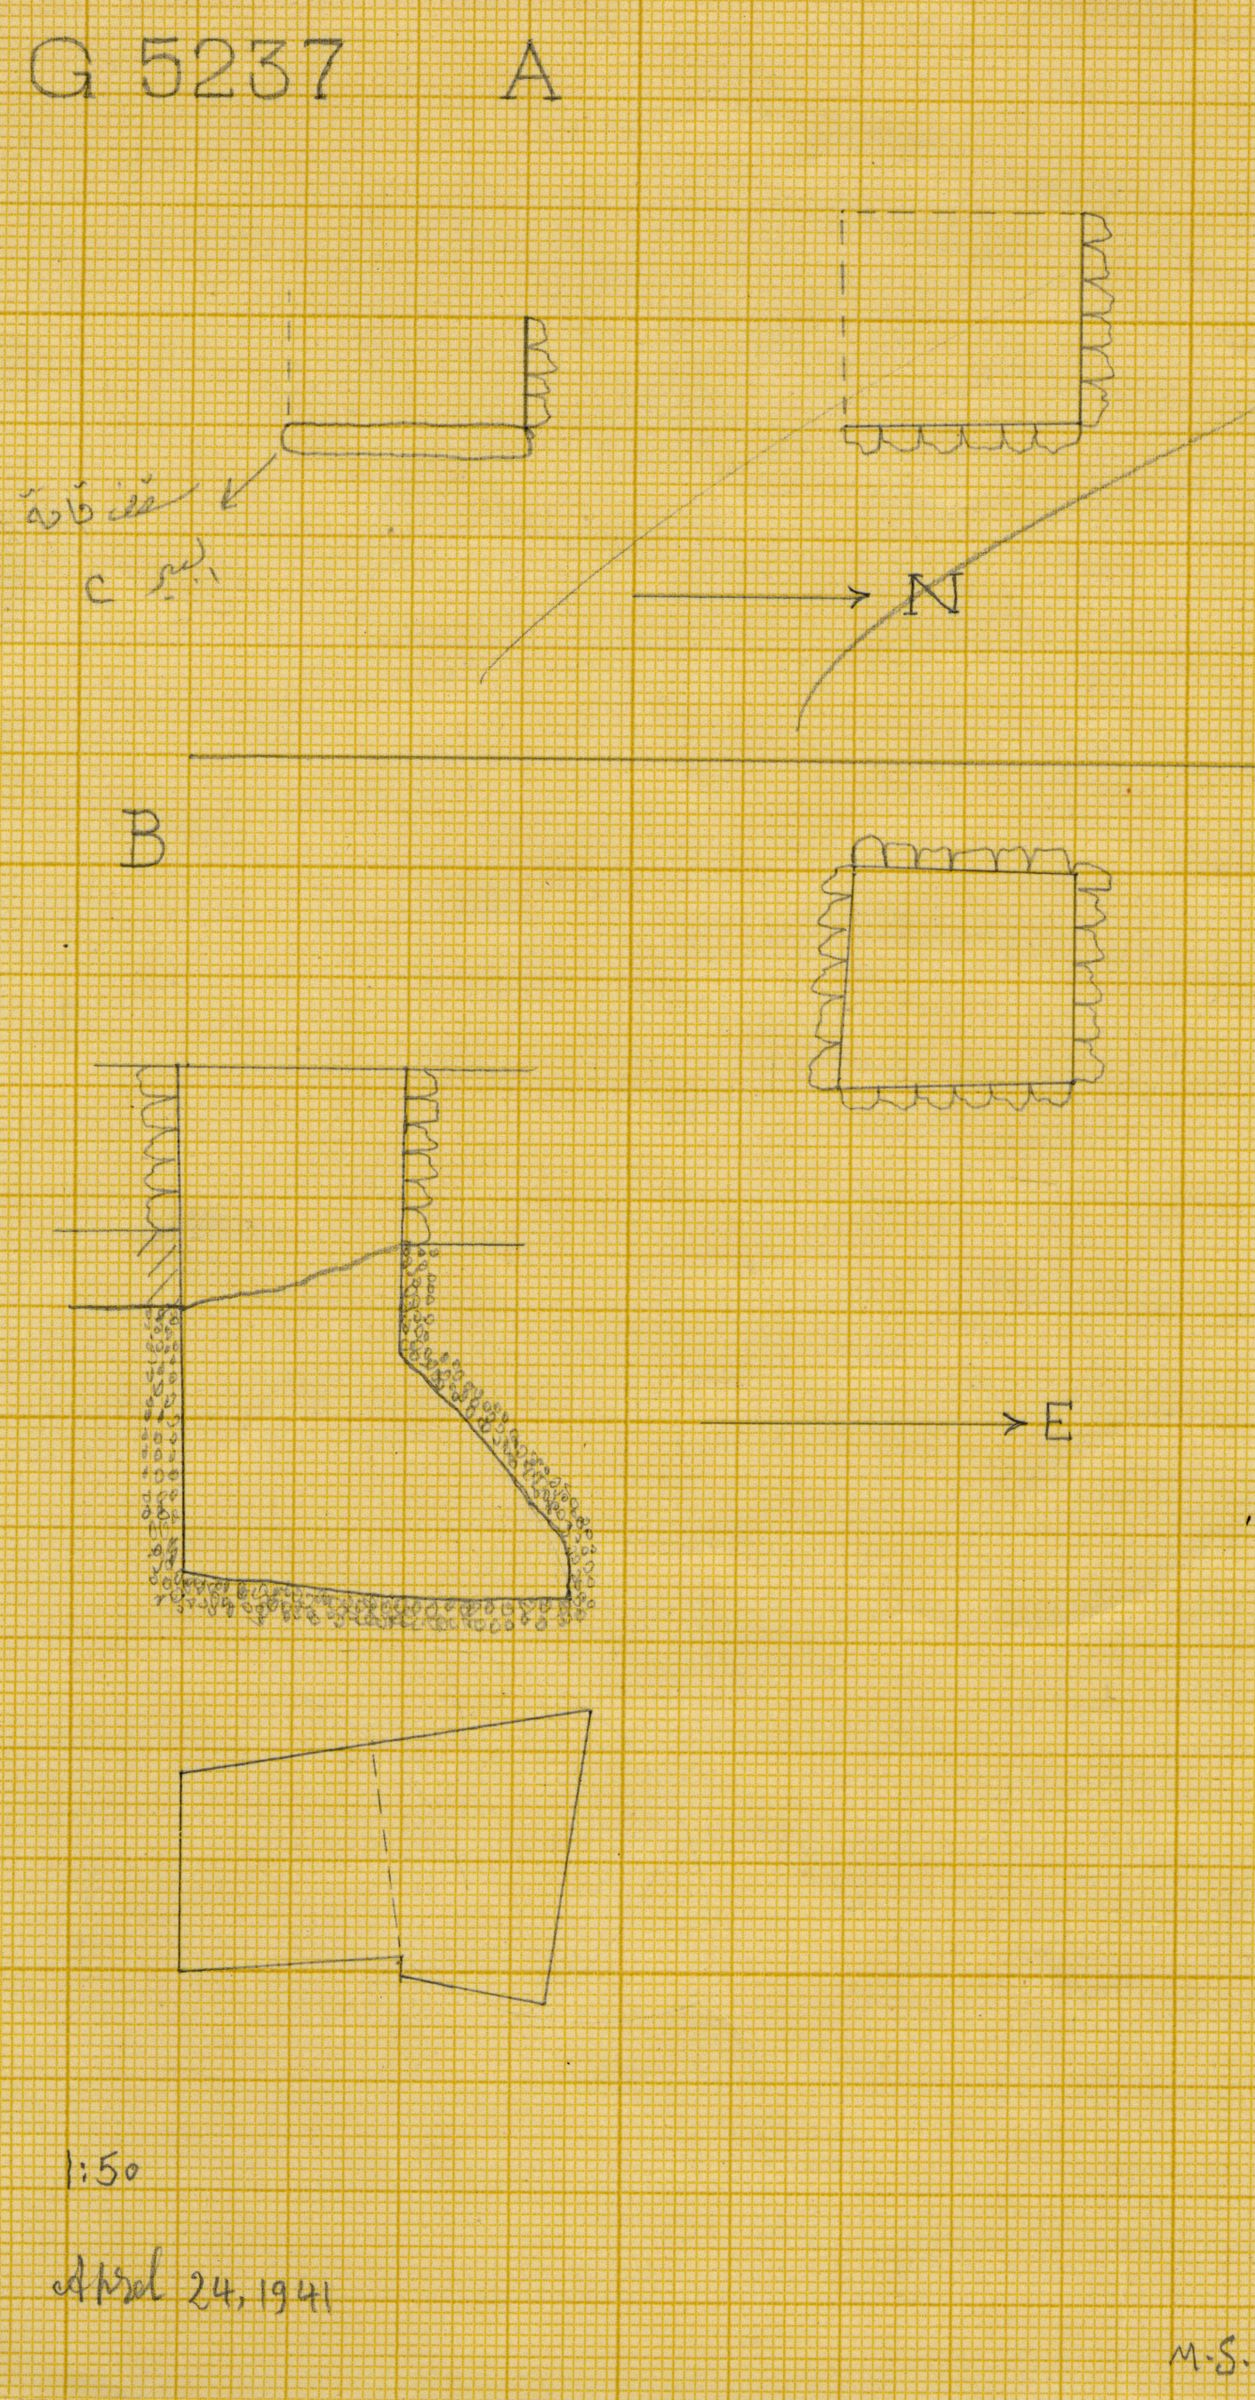 Maps and plans: G 5237, Shaft A and B